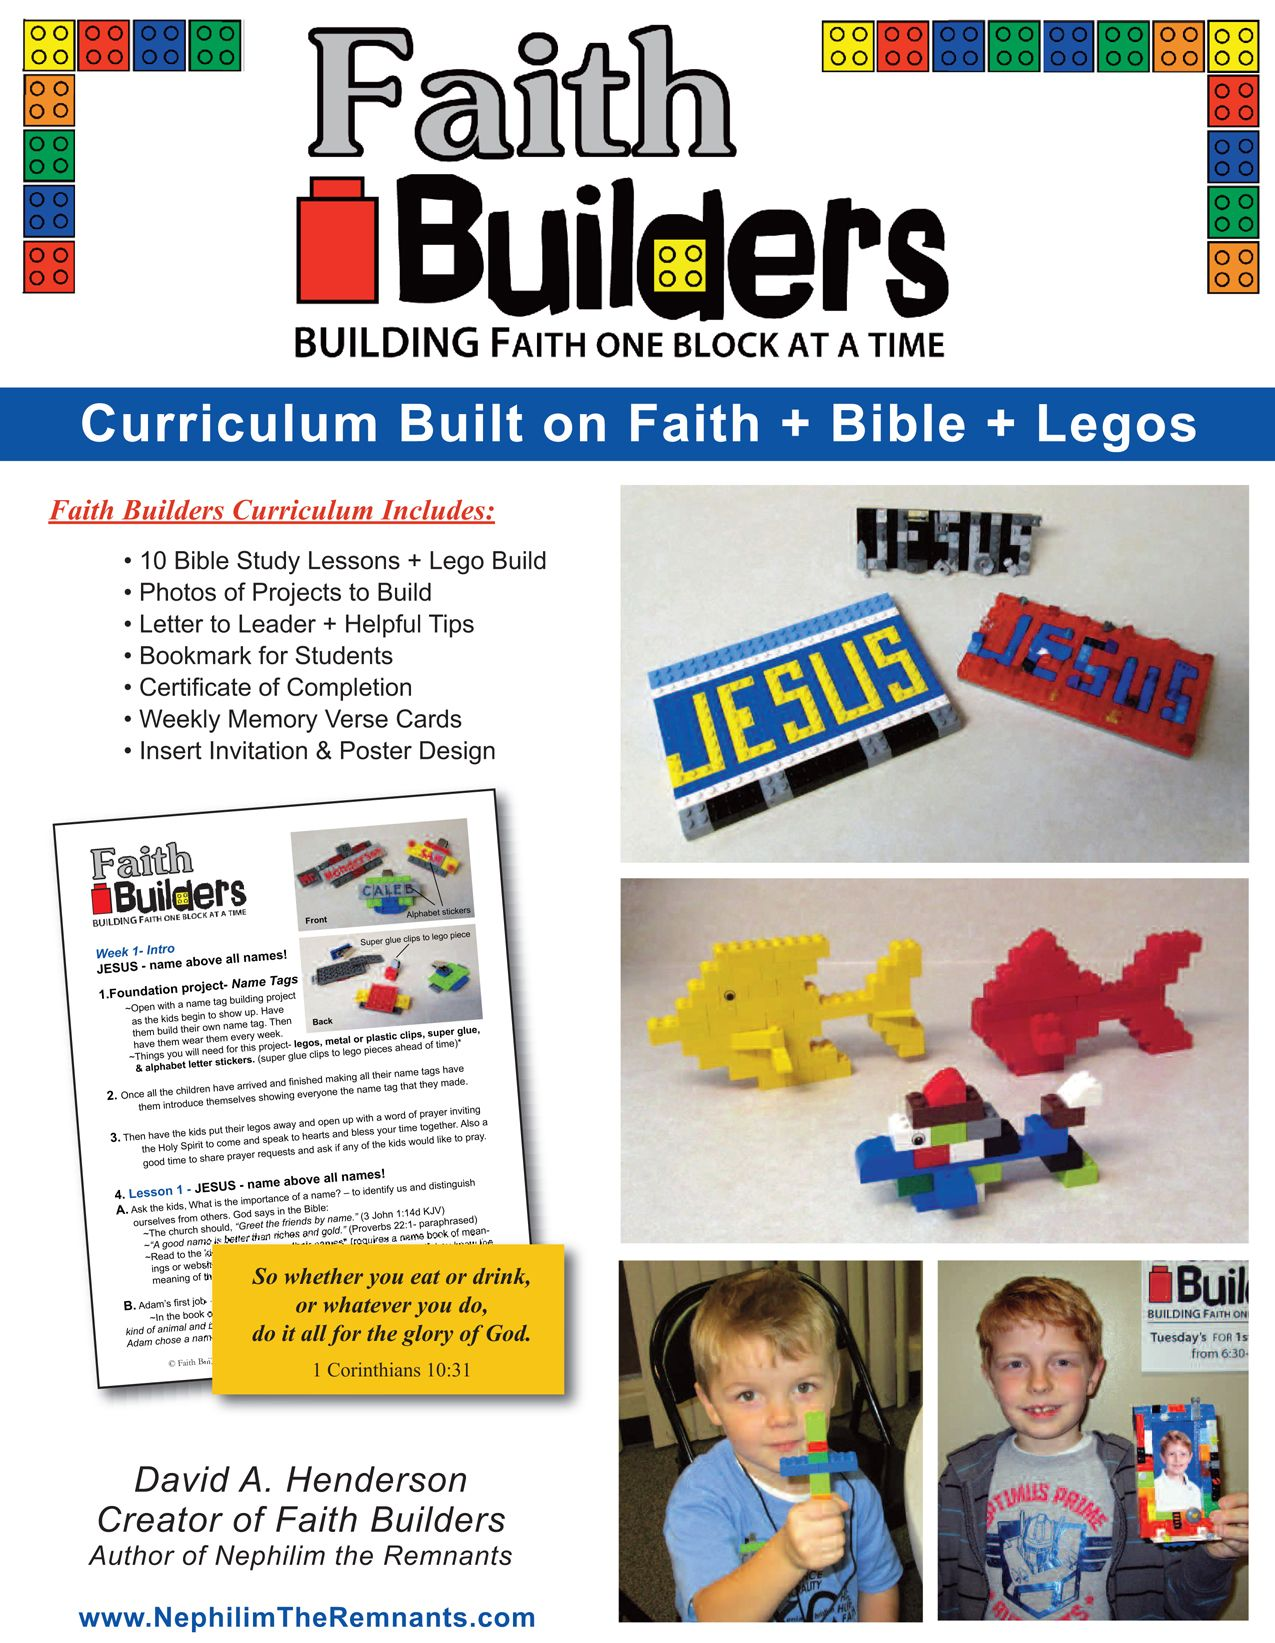 looks like an interesting curriculum for a small vbs or summer